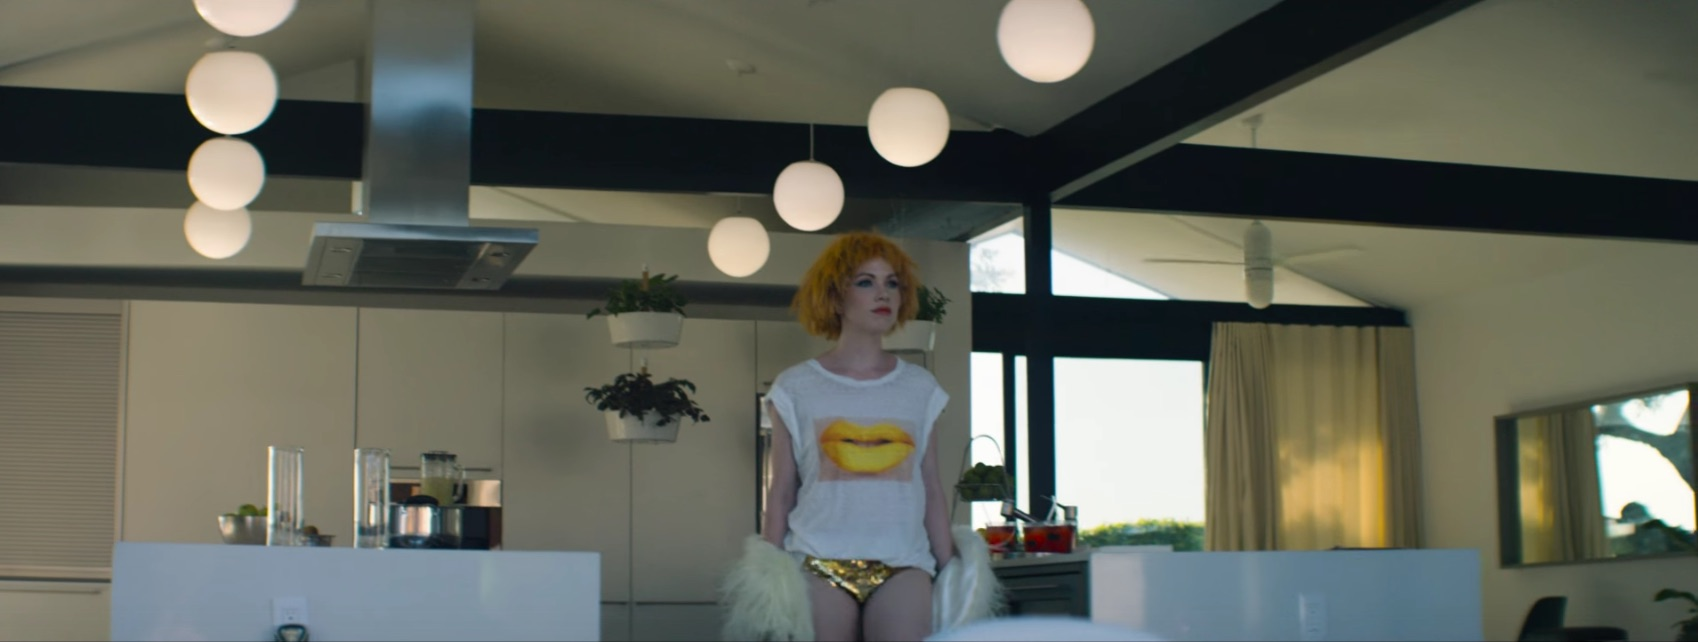 "Carly Rae Jepsen plays house in the ""Super Natural"" video"